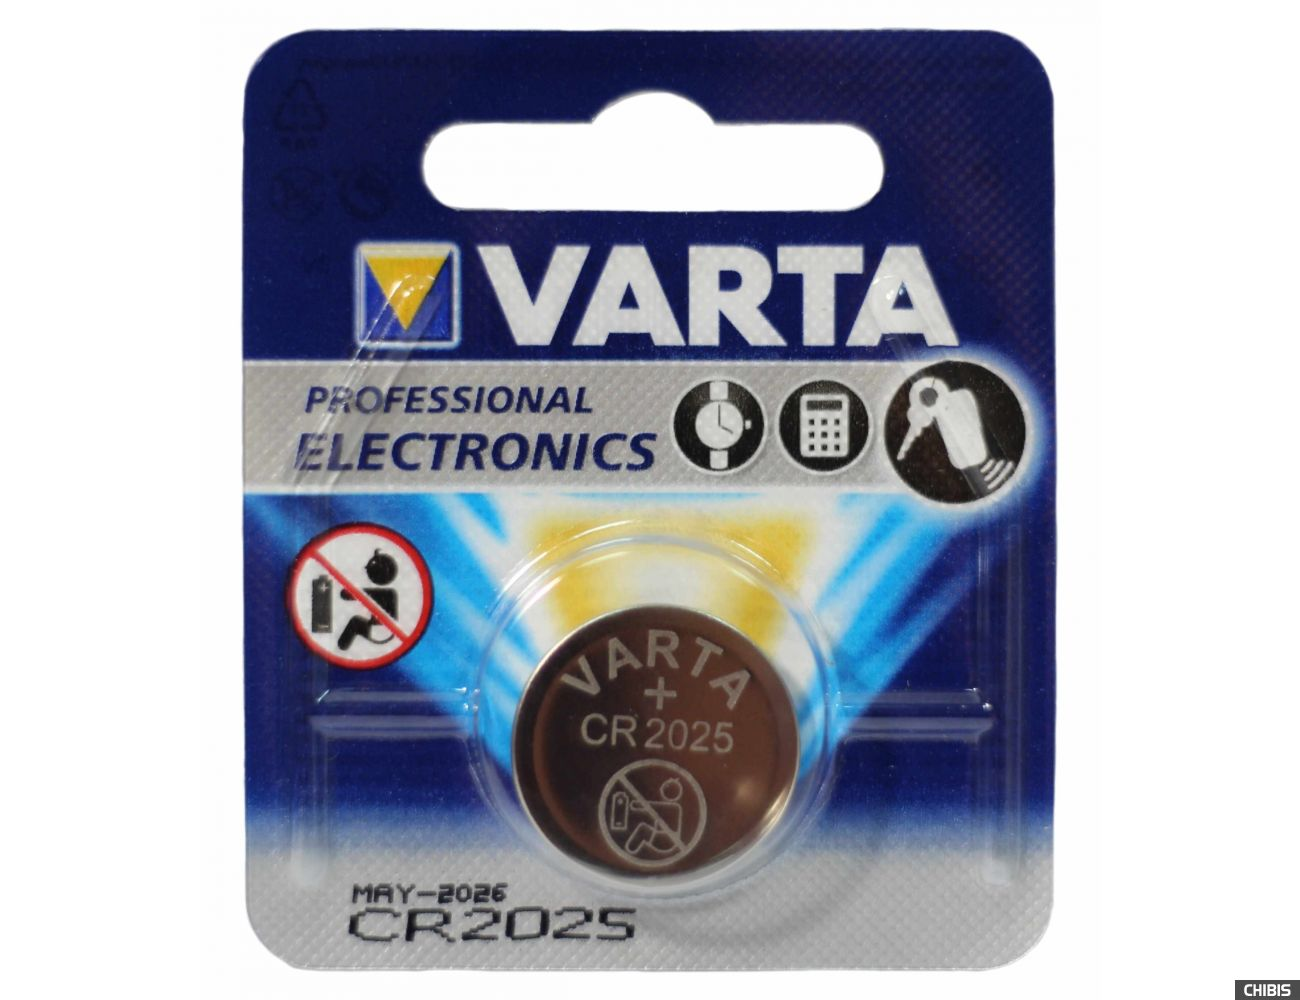 Батарейка Varta CR2025 Professional Electronics